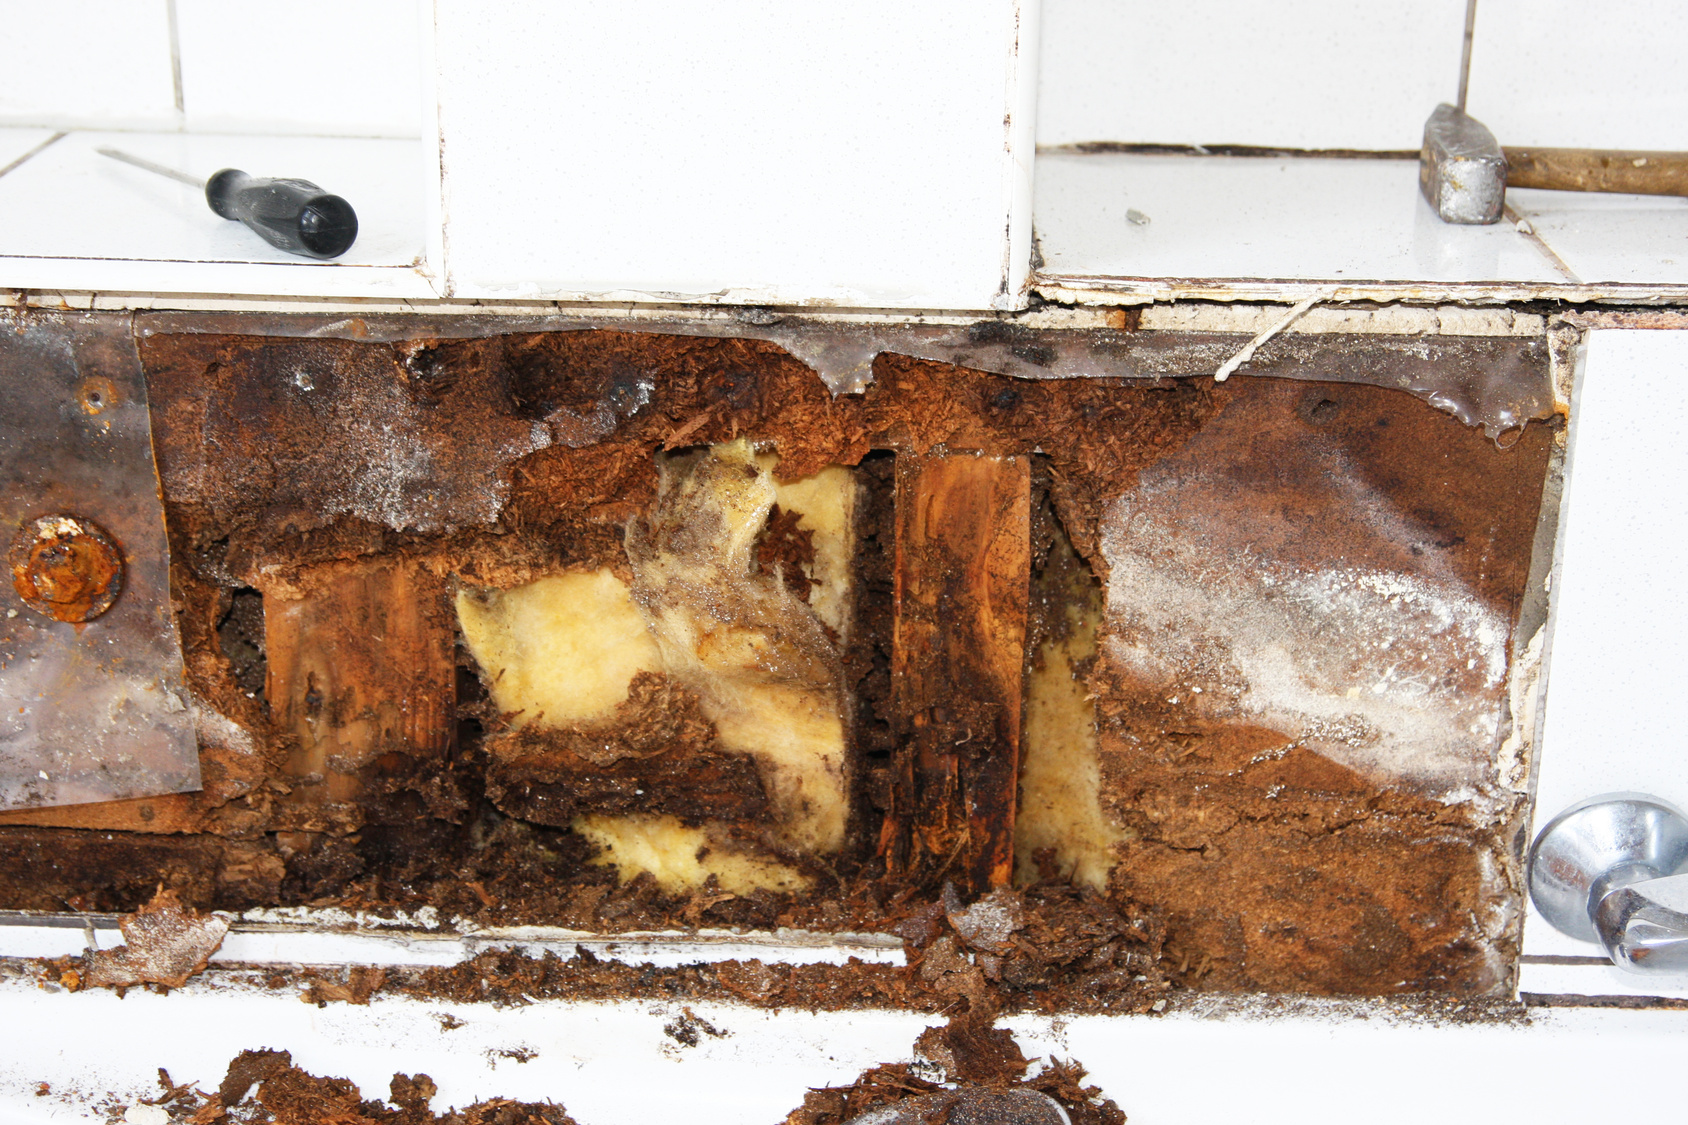 Wet insulation loses its ability to keep a building's temperature stable, and can become a mold colony if given enough time.